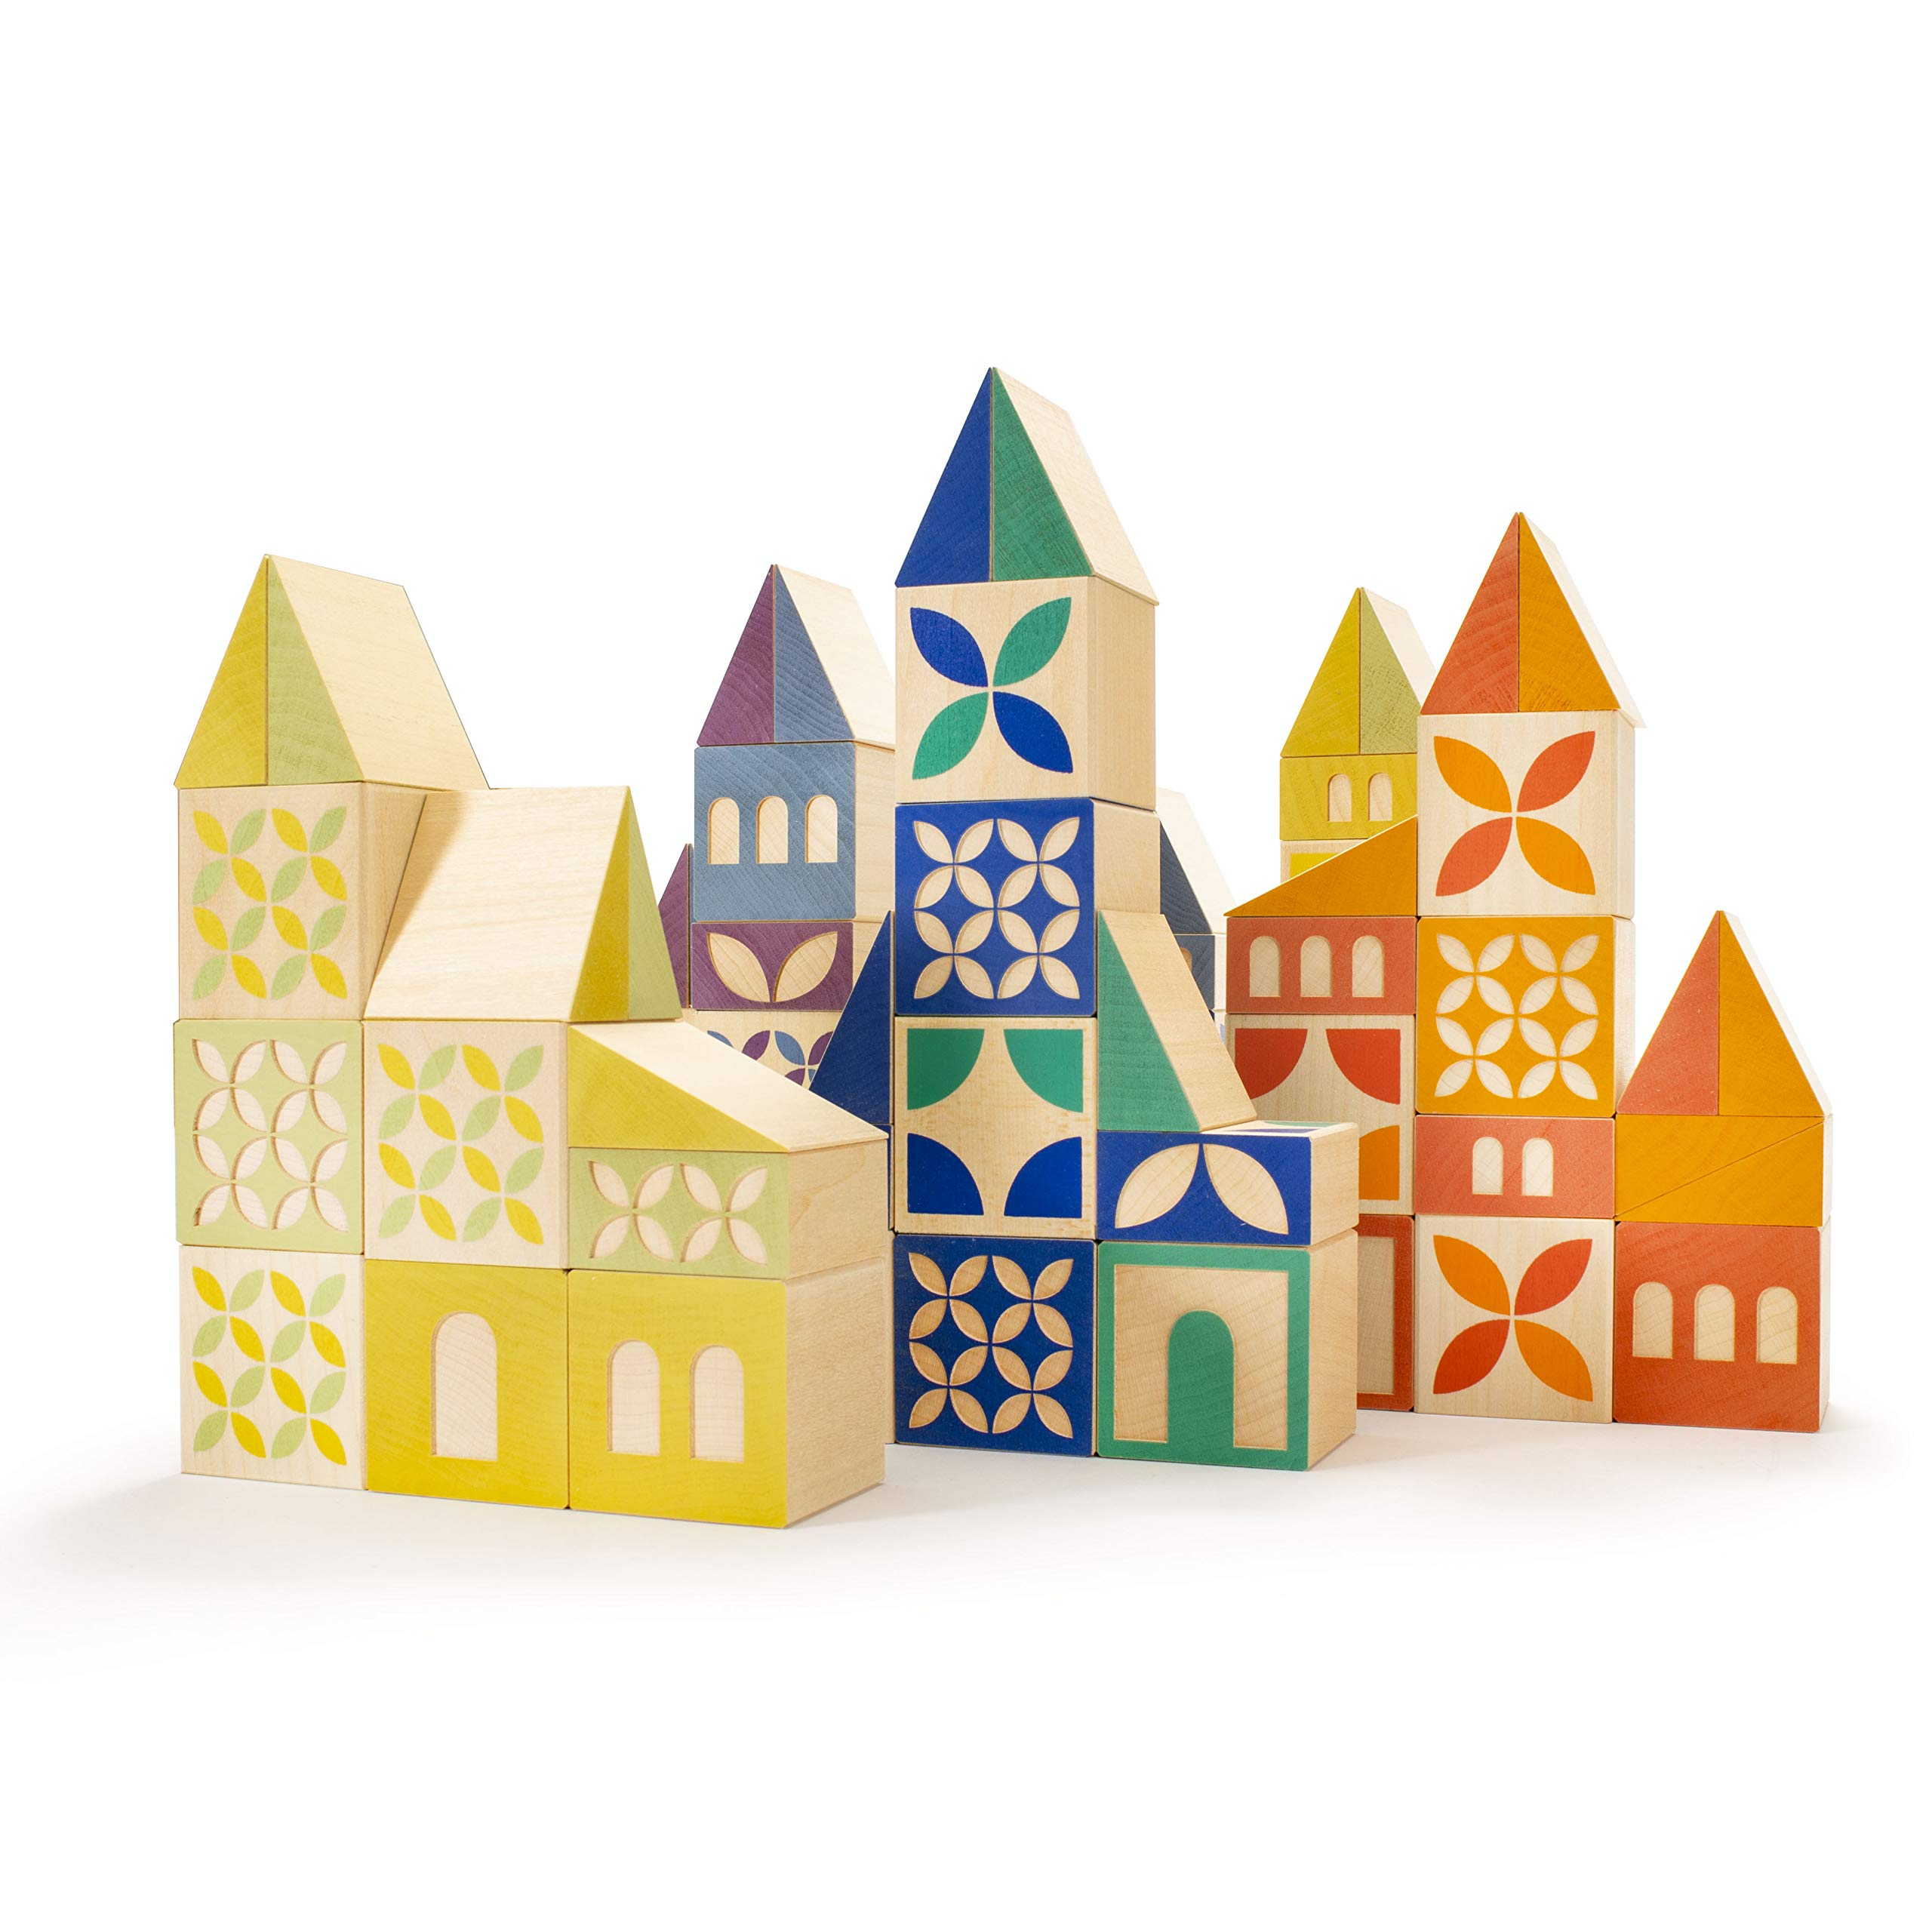 Uncle Goose Gosling Square Building Blocks - Made in The USA